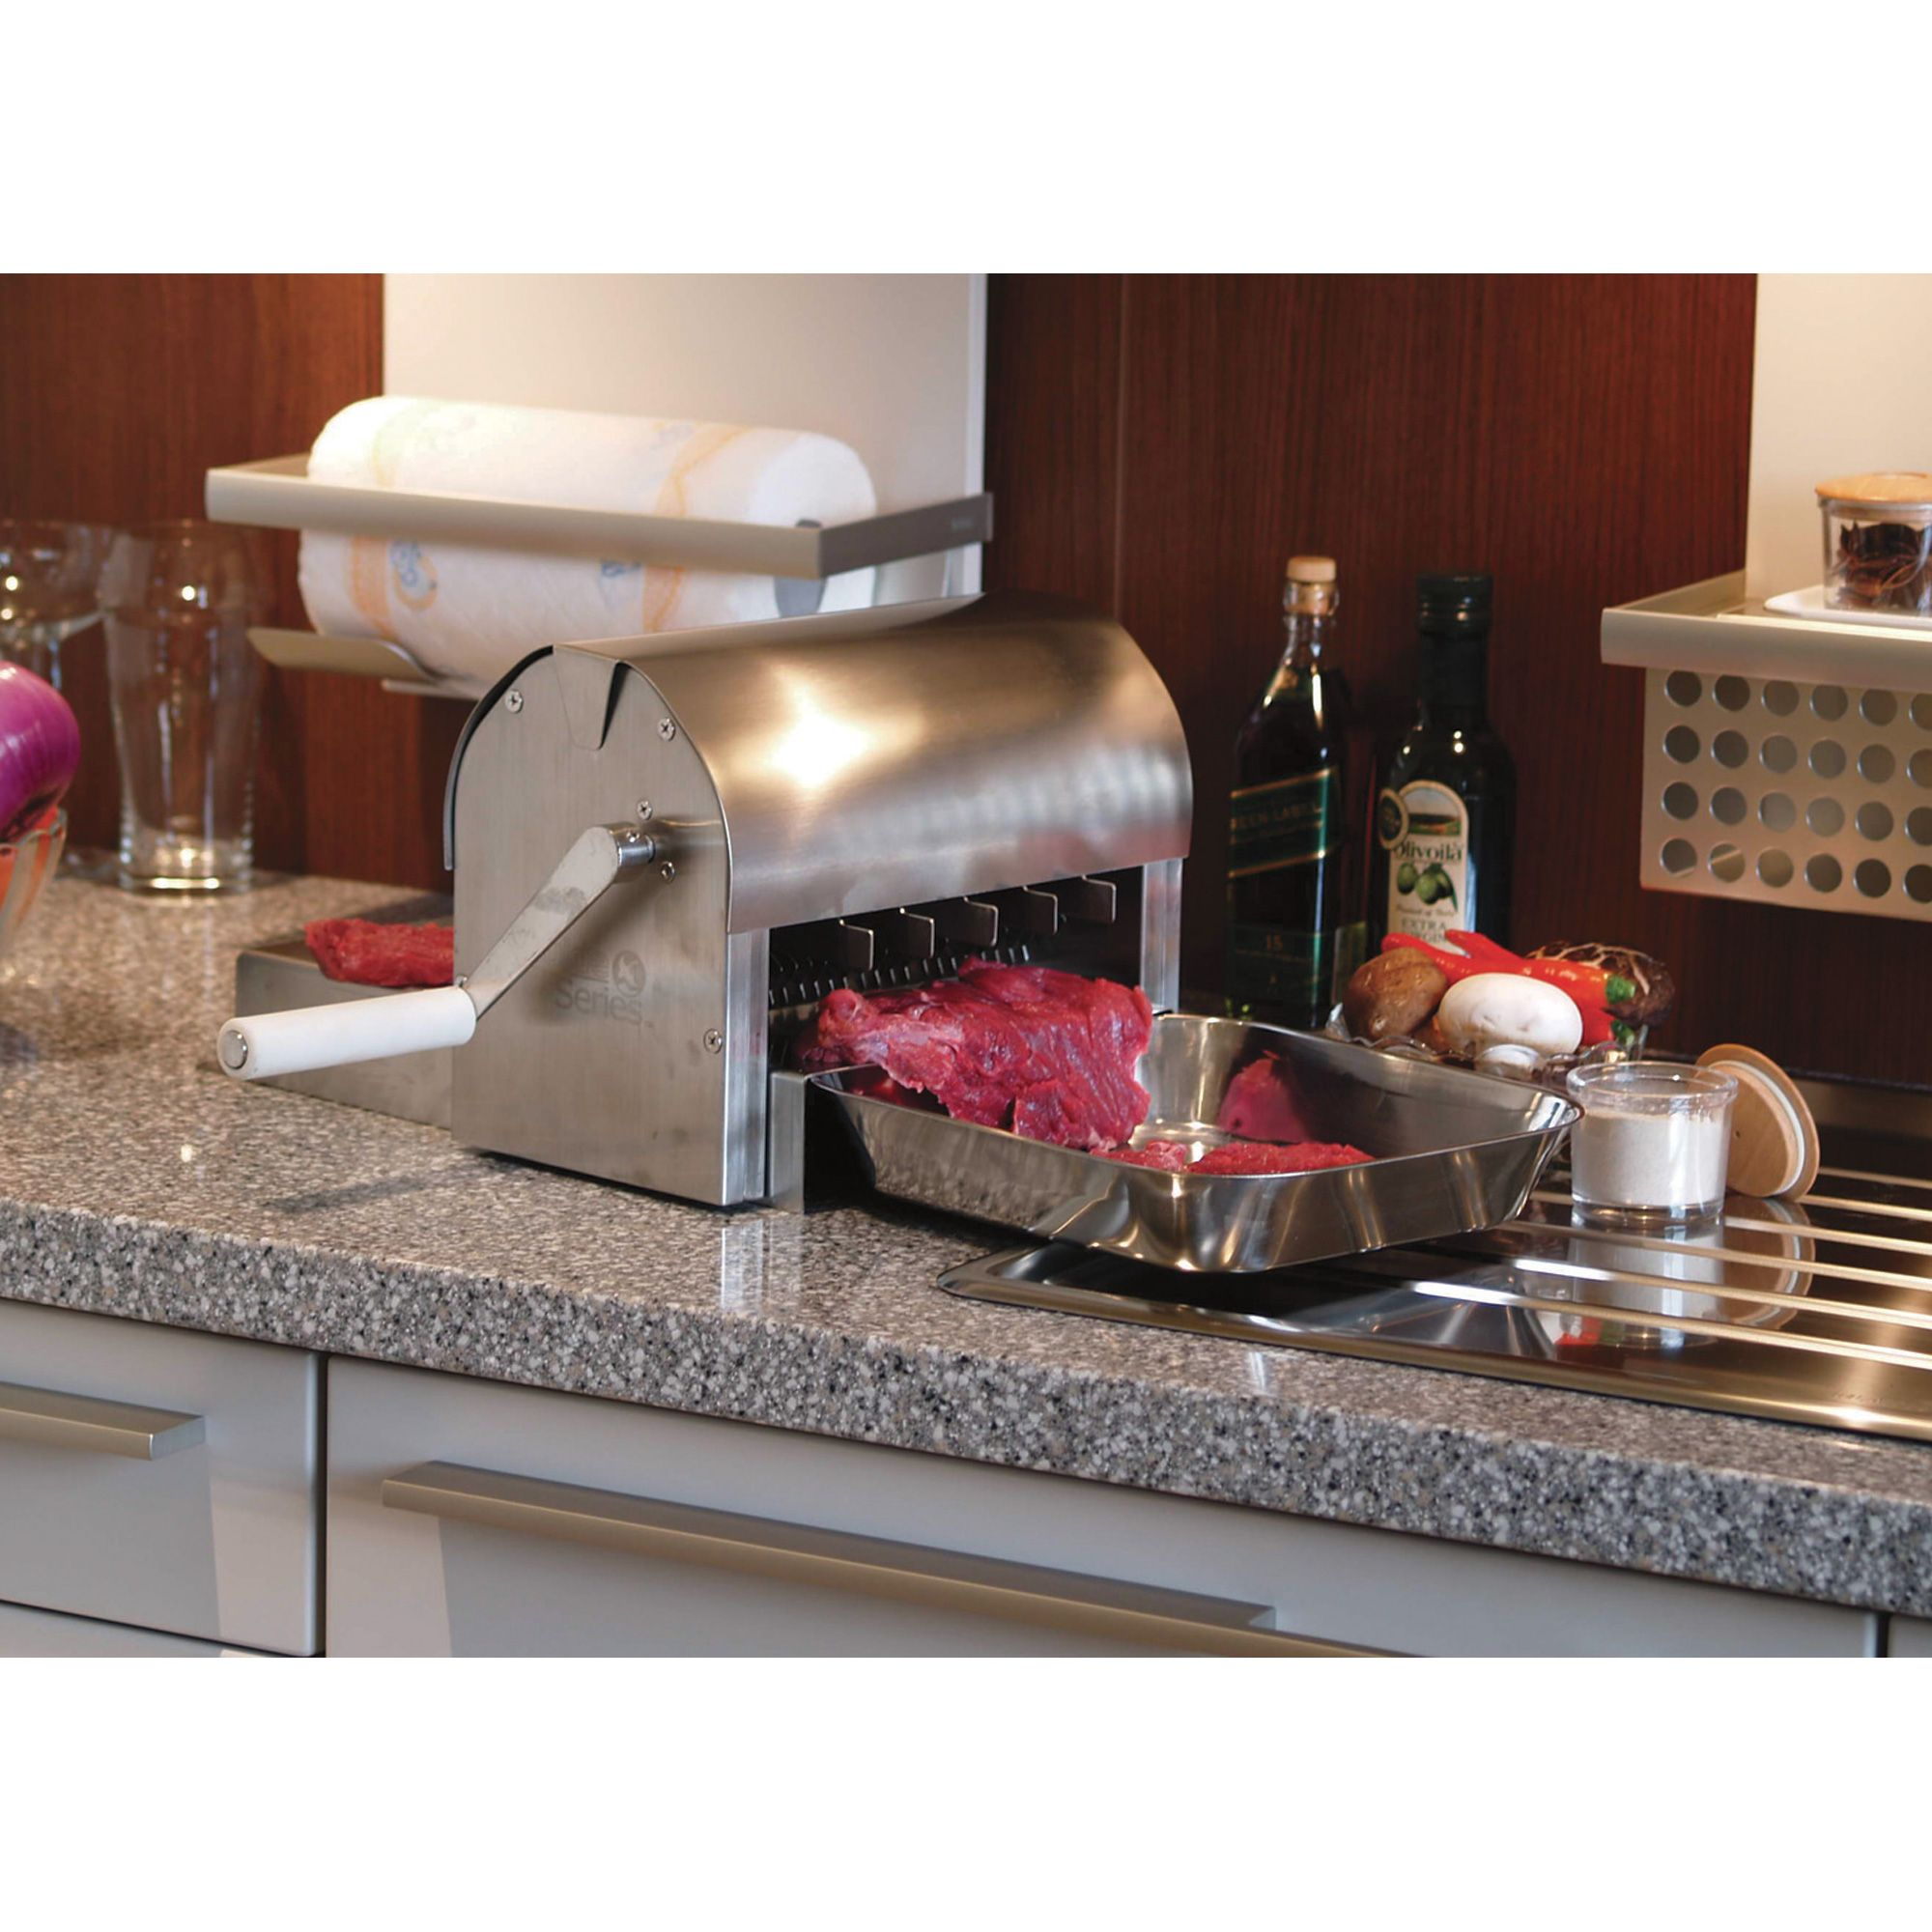 The Wish List Of Luxury Kitchens: Kitchener Deluxe Meat Tenderizer